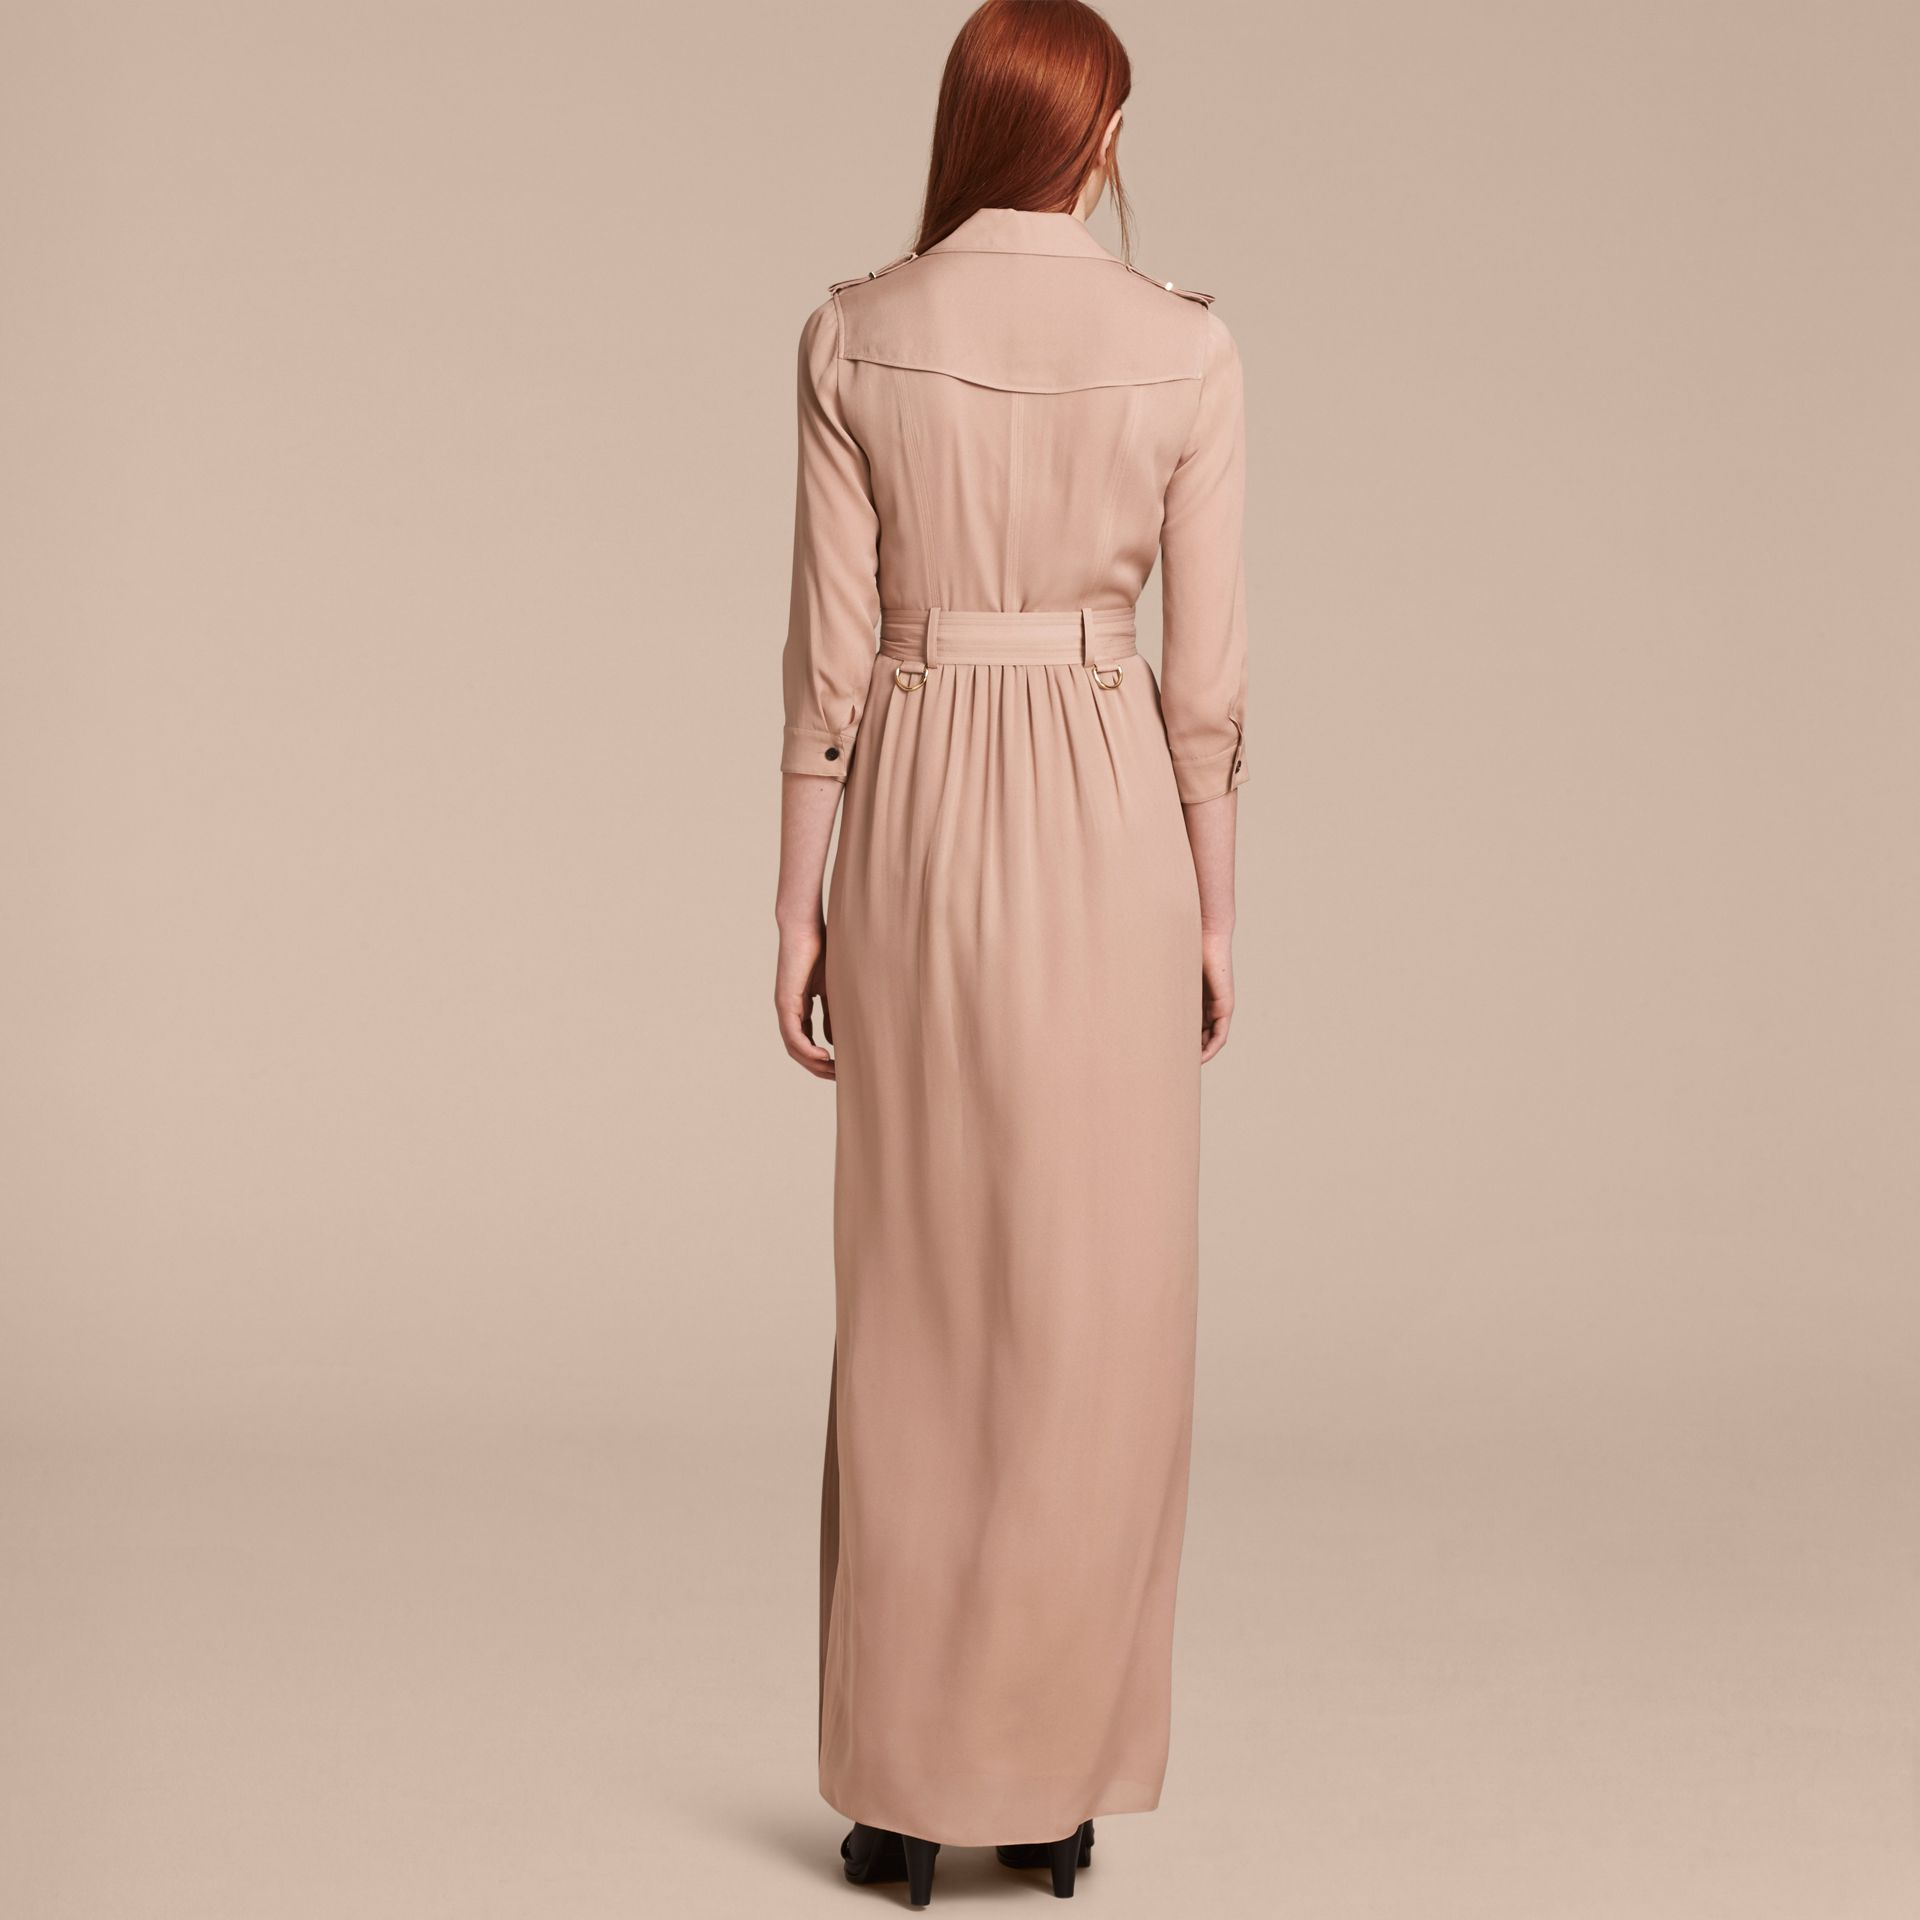 Silk Trench Dress in Nude - Women | Burberry - gallery image 3